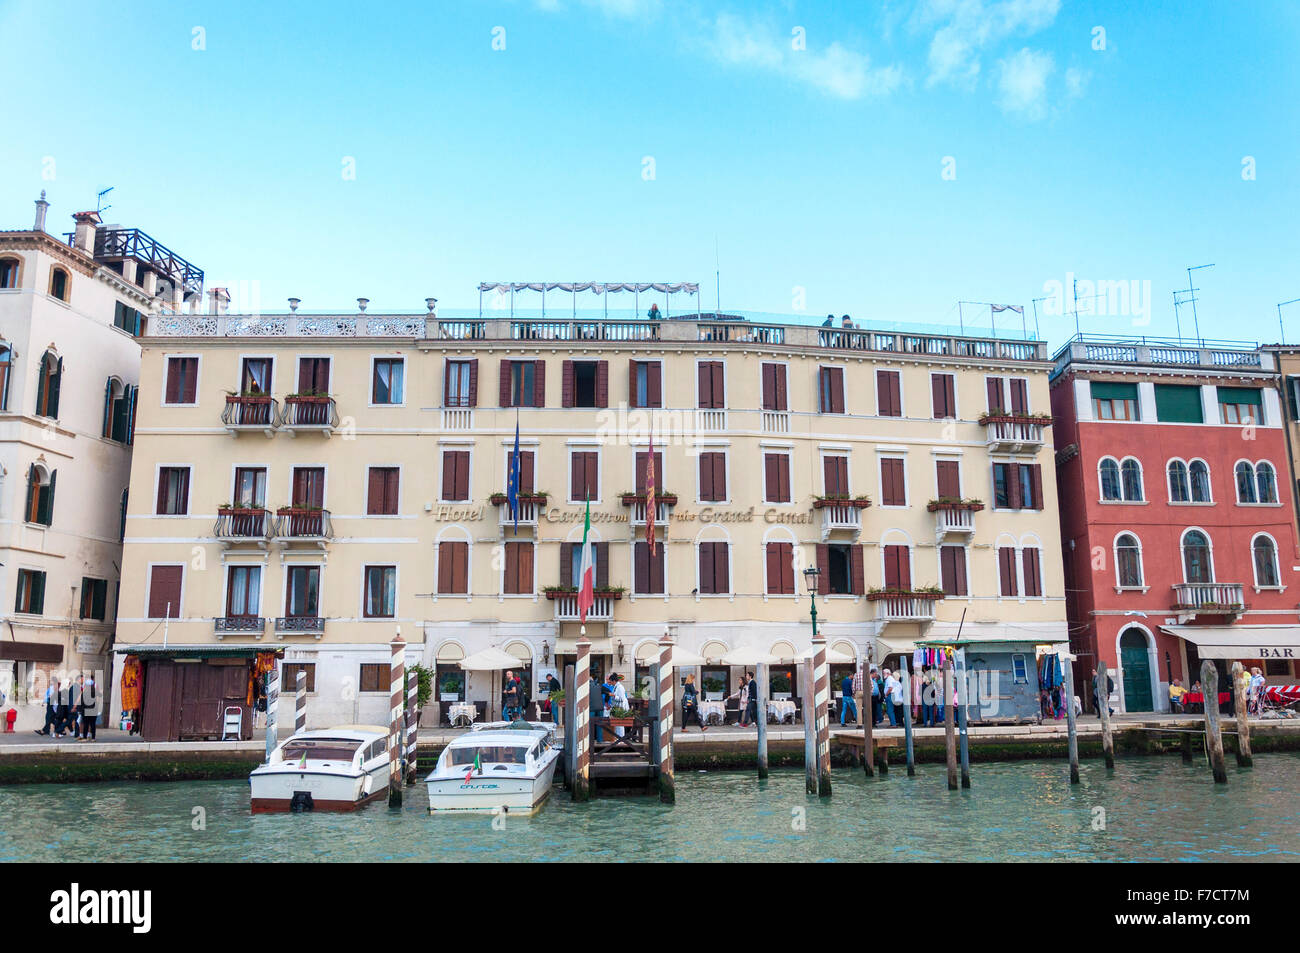 Hotel Carlton On The Grand Canal Venice Italy